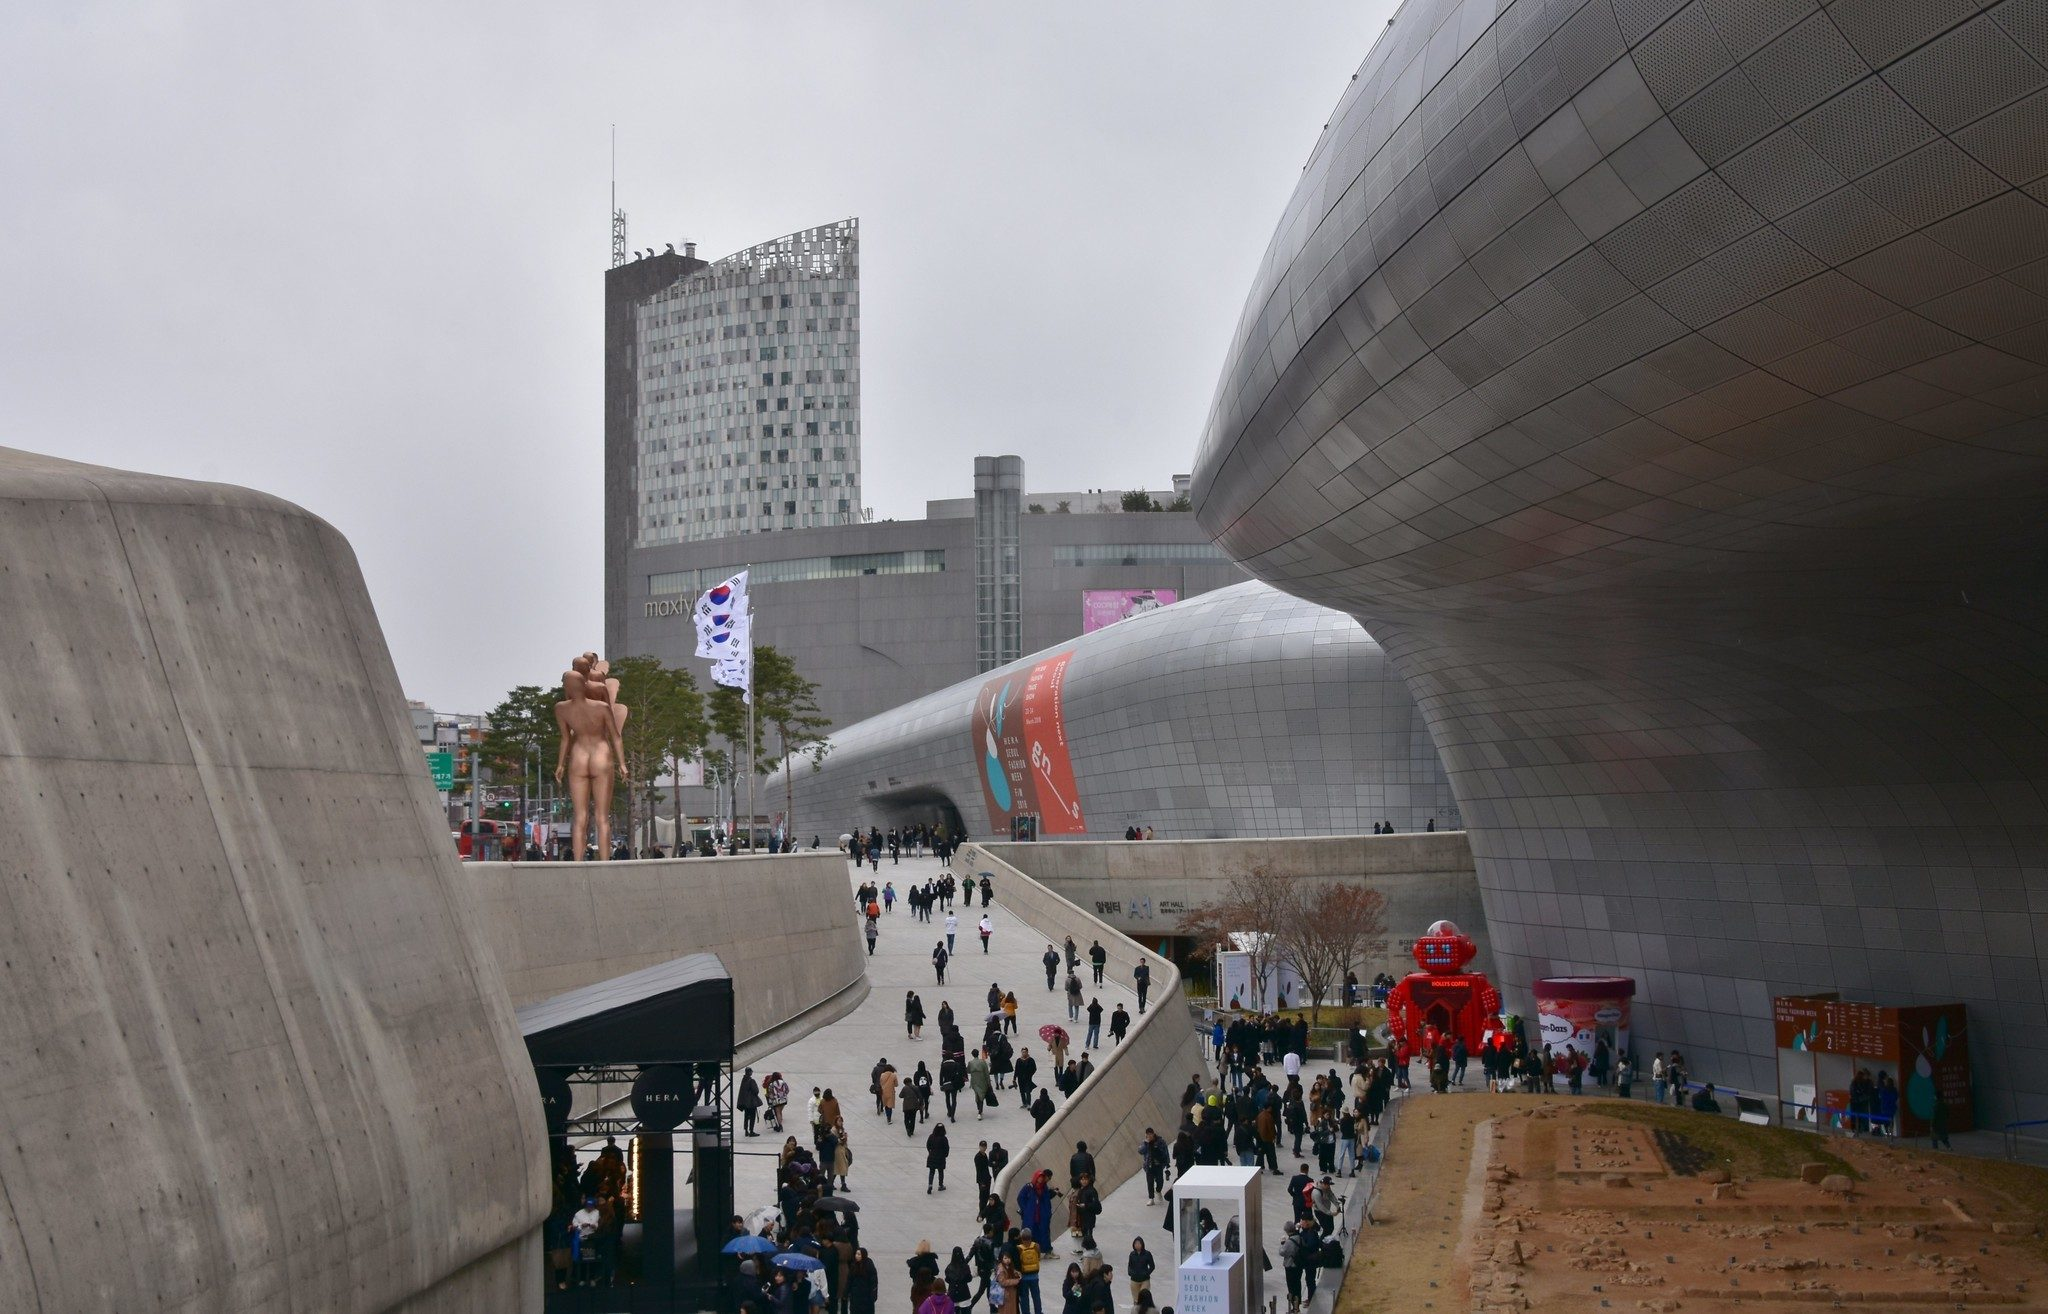 3 Day Seoul Itinerary Get Best of Seoul, South Korea in 3 Days6